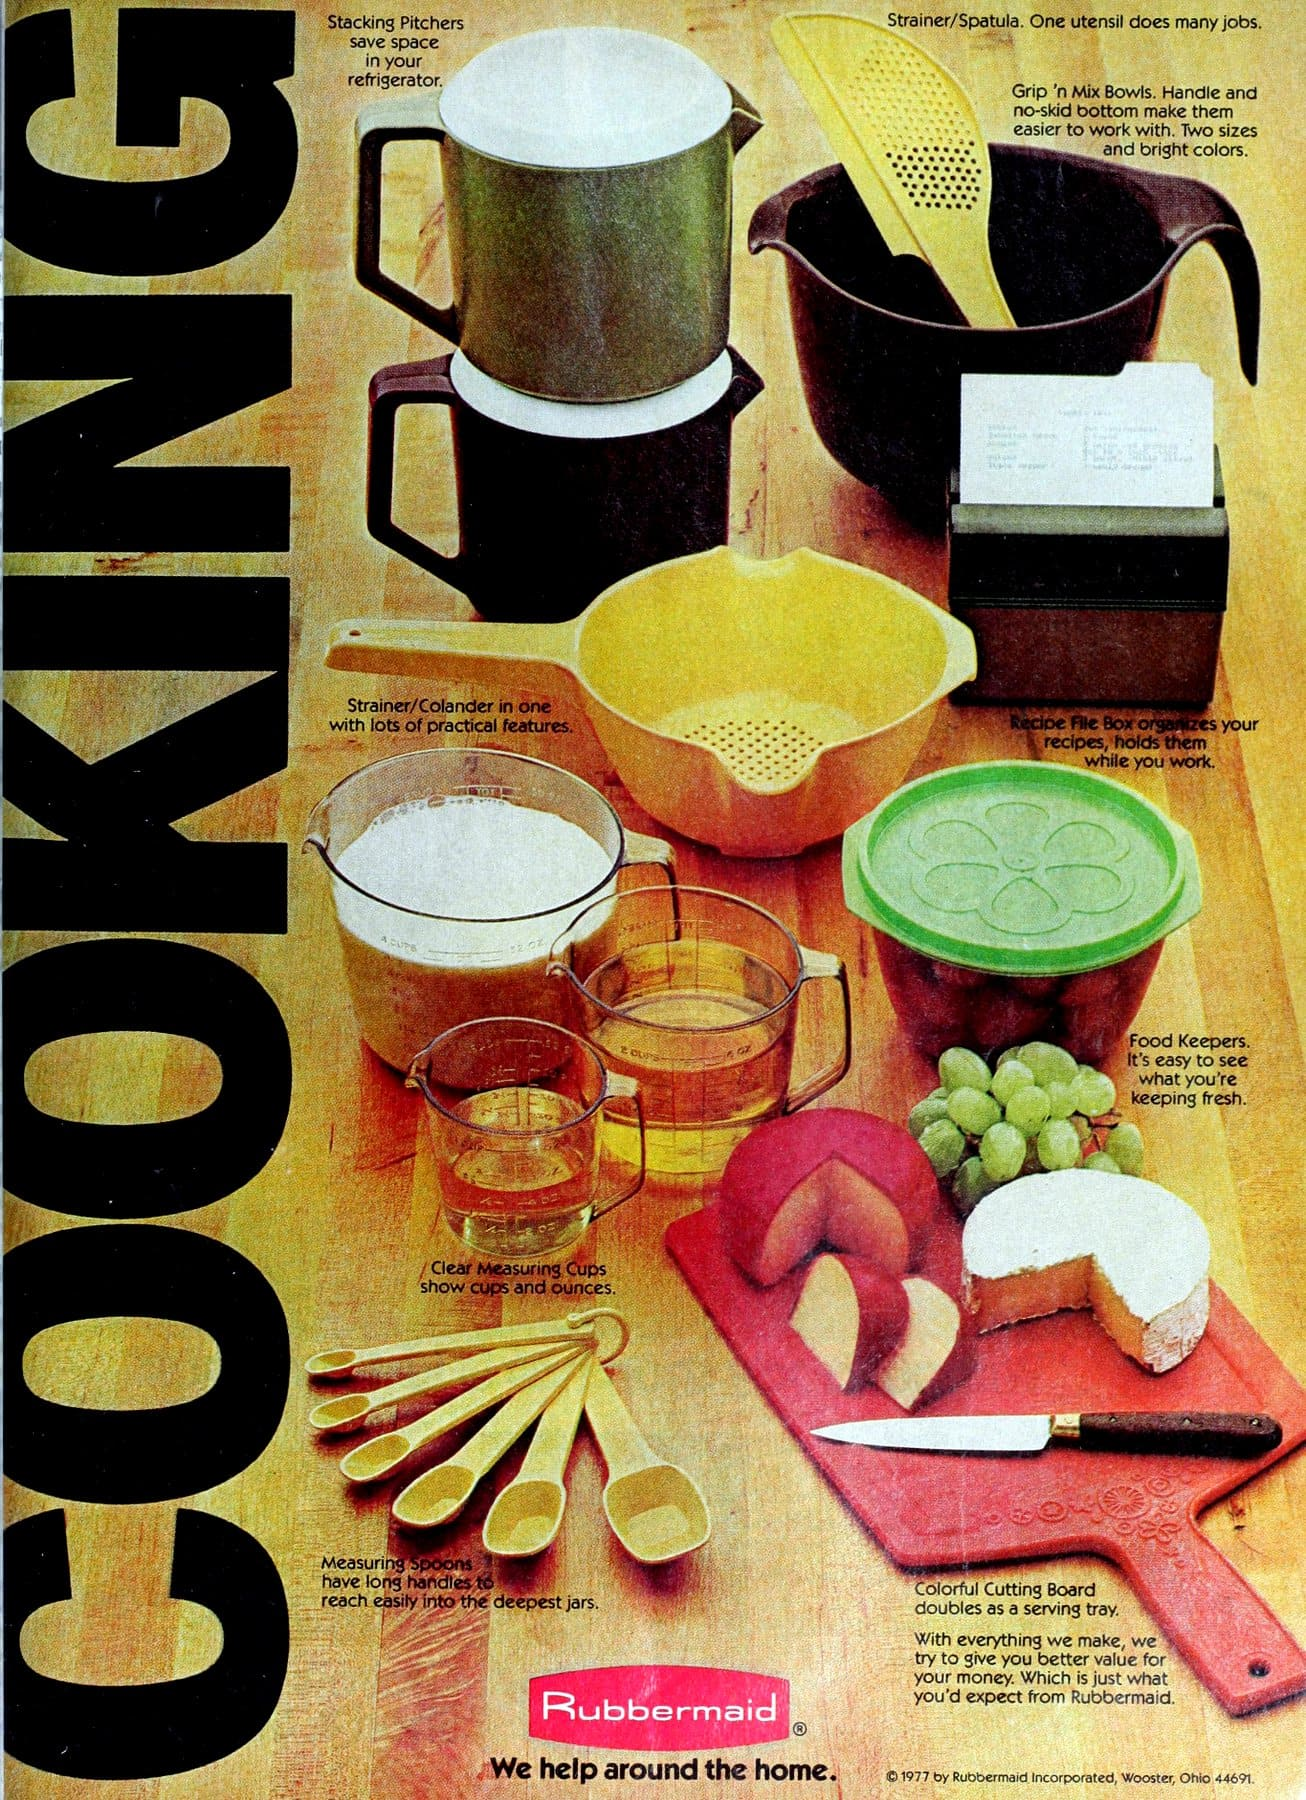 Retro Rubbermaid food storage and kitchen gadgets (1977)